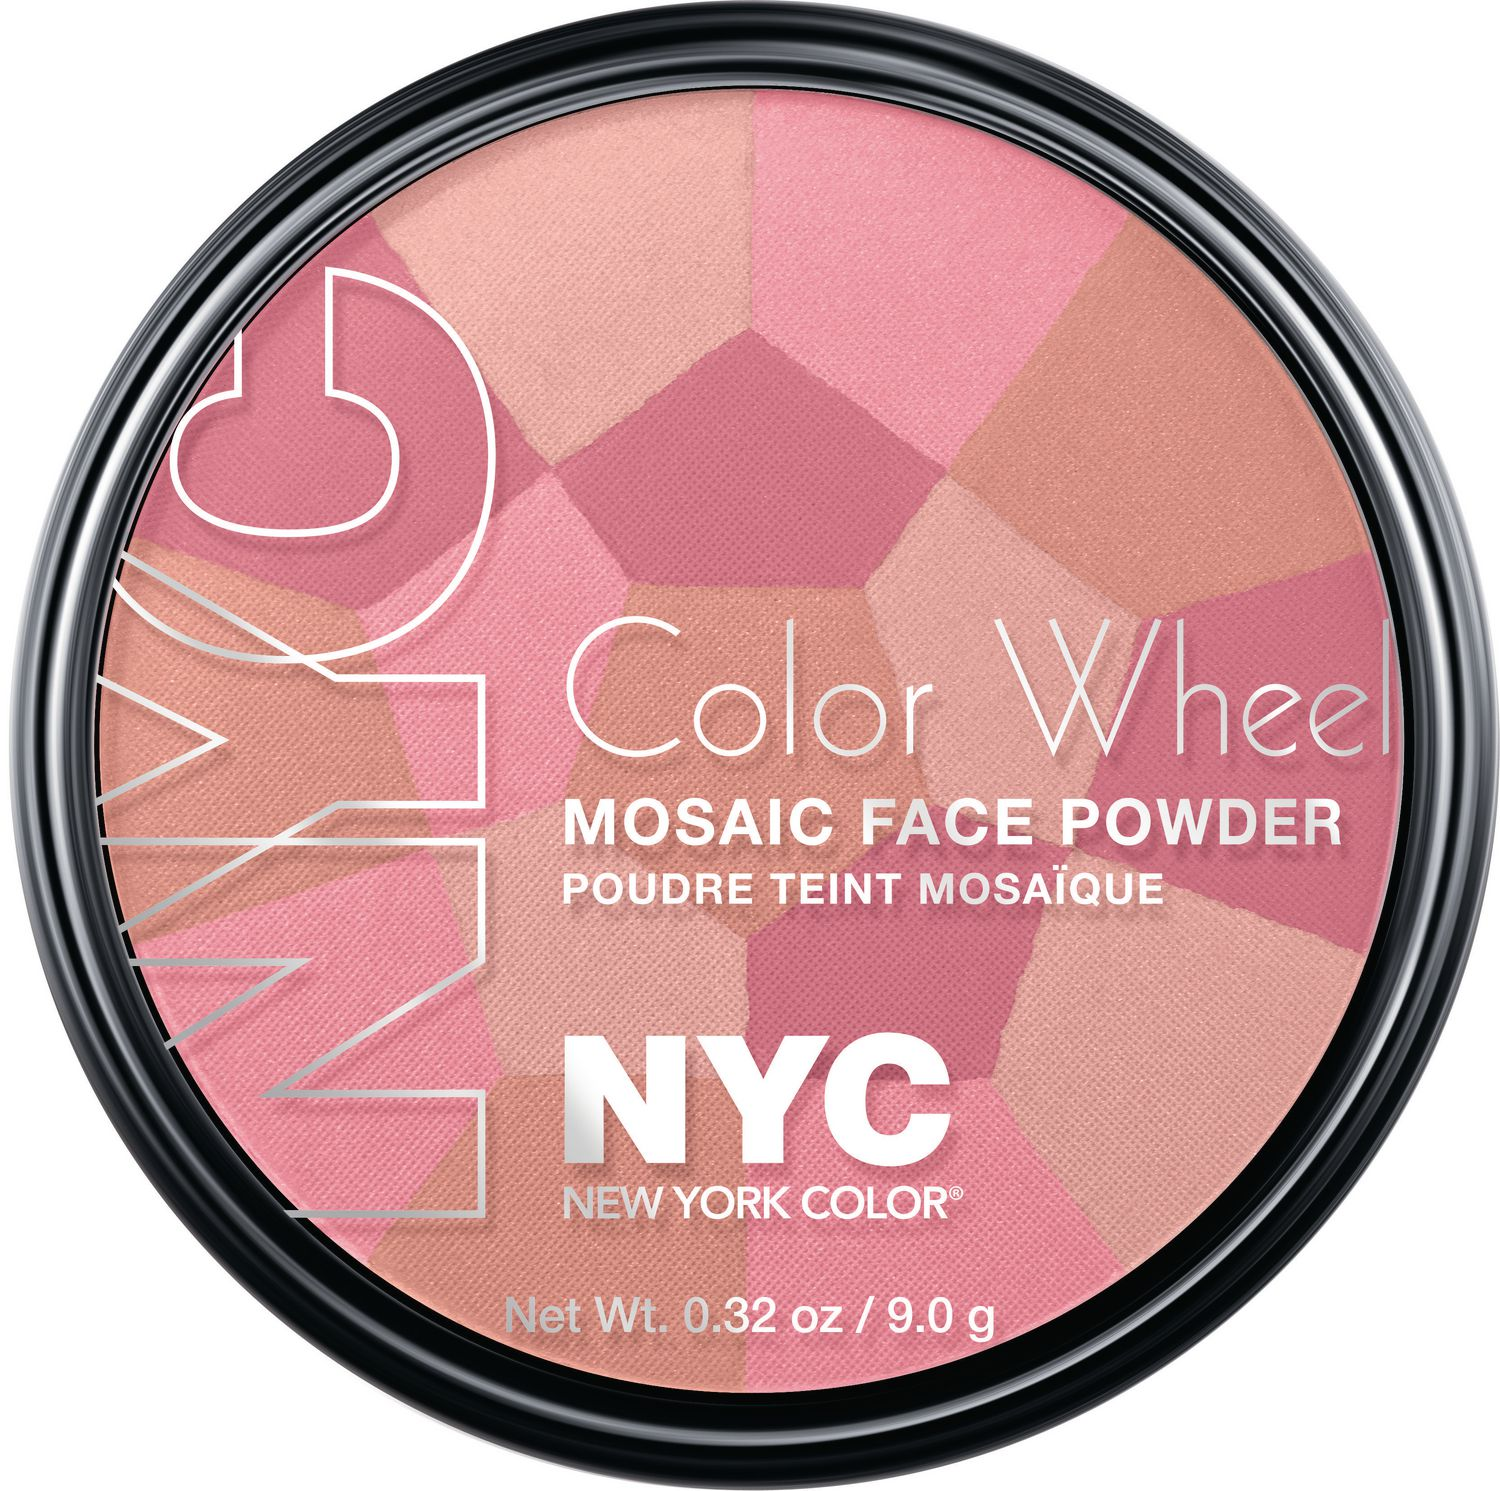 NYC New York Color Wheel Mosaic Face Powder 9 G